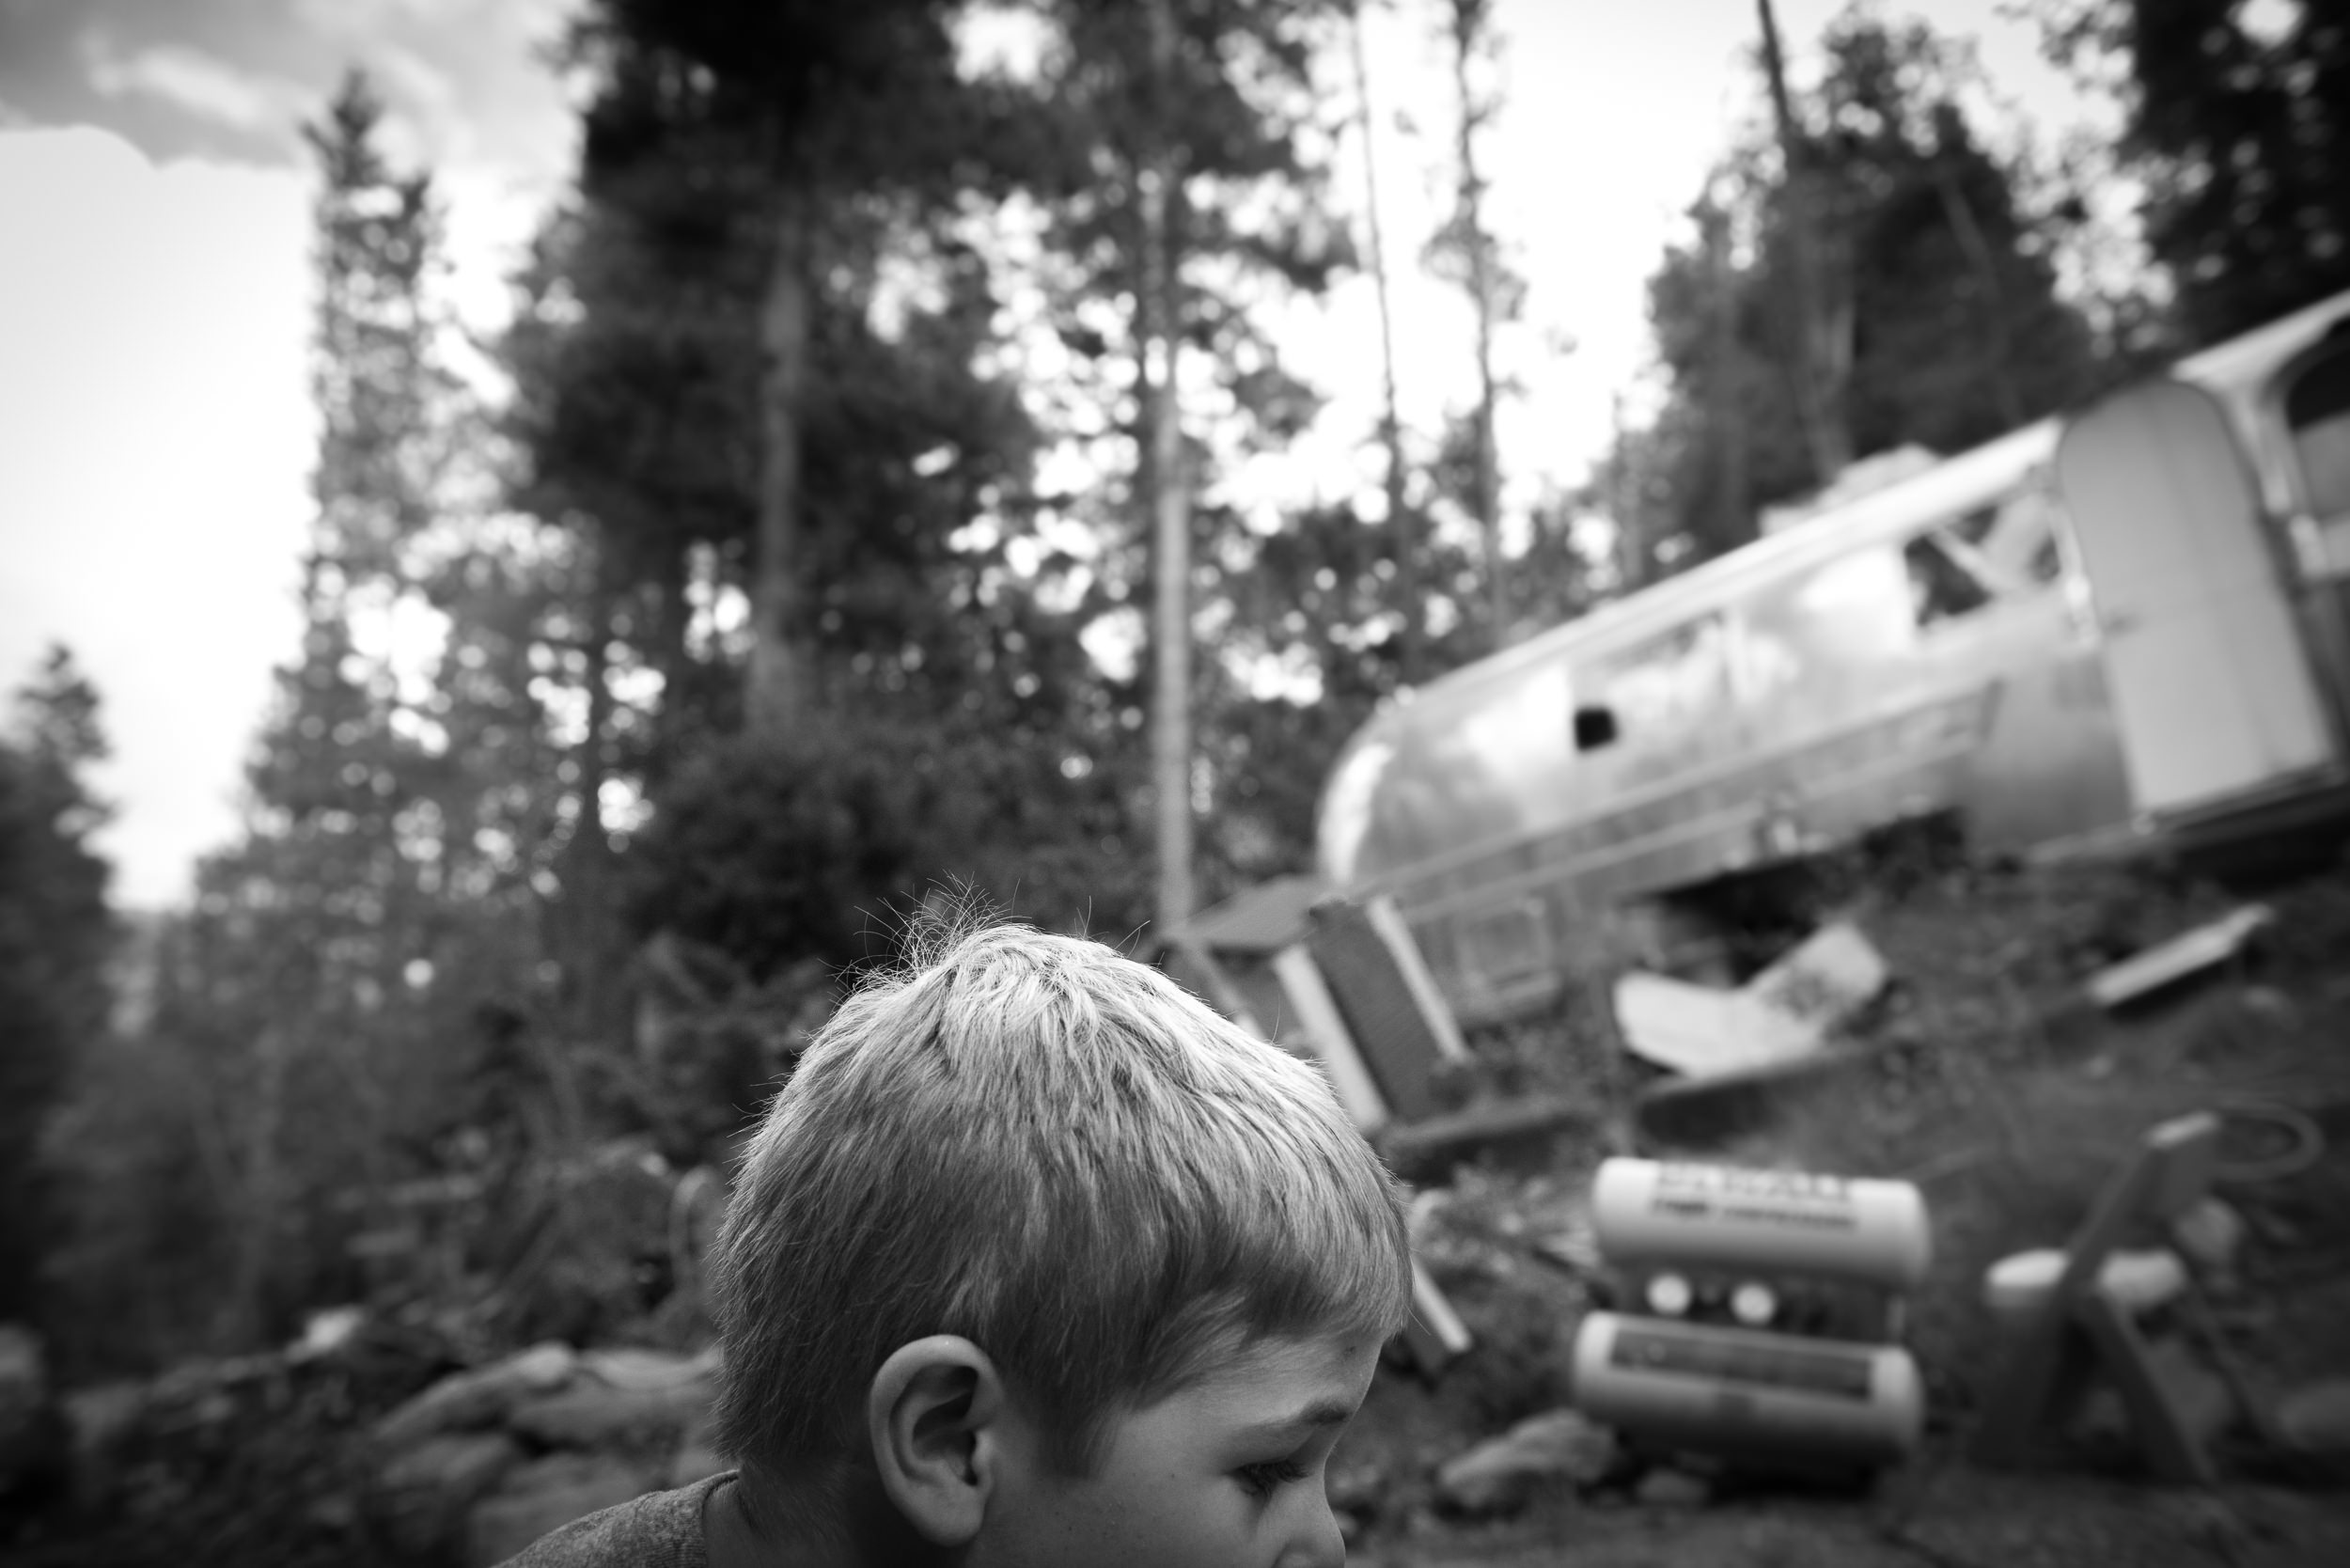 "Inspirational Poetry Blog - The Pen & Camera - Rumi quote ""Let yourself"" - Molly Rees Photo - Black and White Documentary Childhood Photography - Portrait of a Boy outdoors with airstream trailer in Evergreen Colorado by M. Menschel"